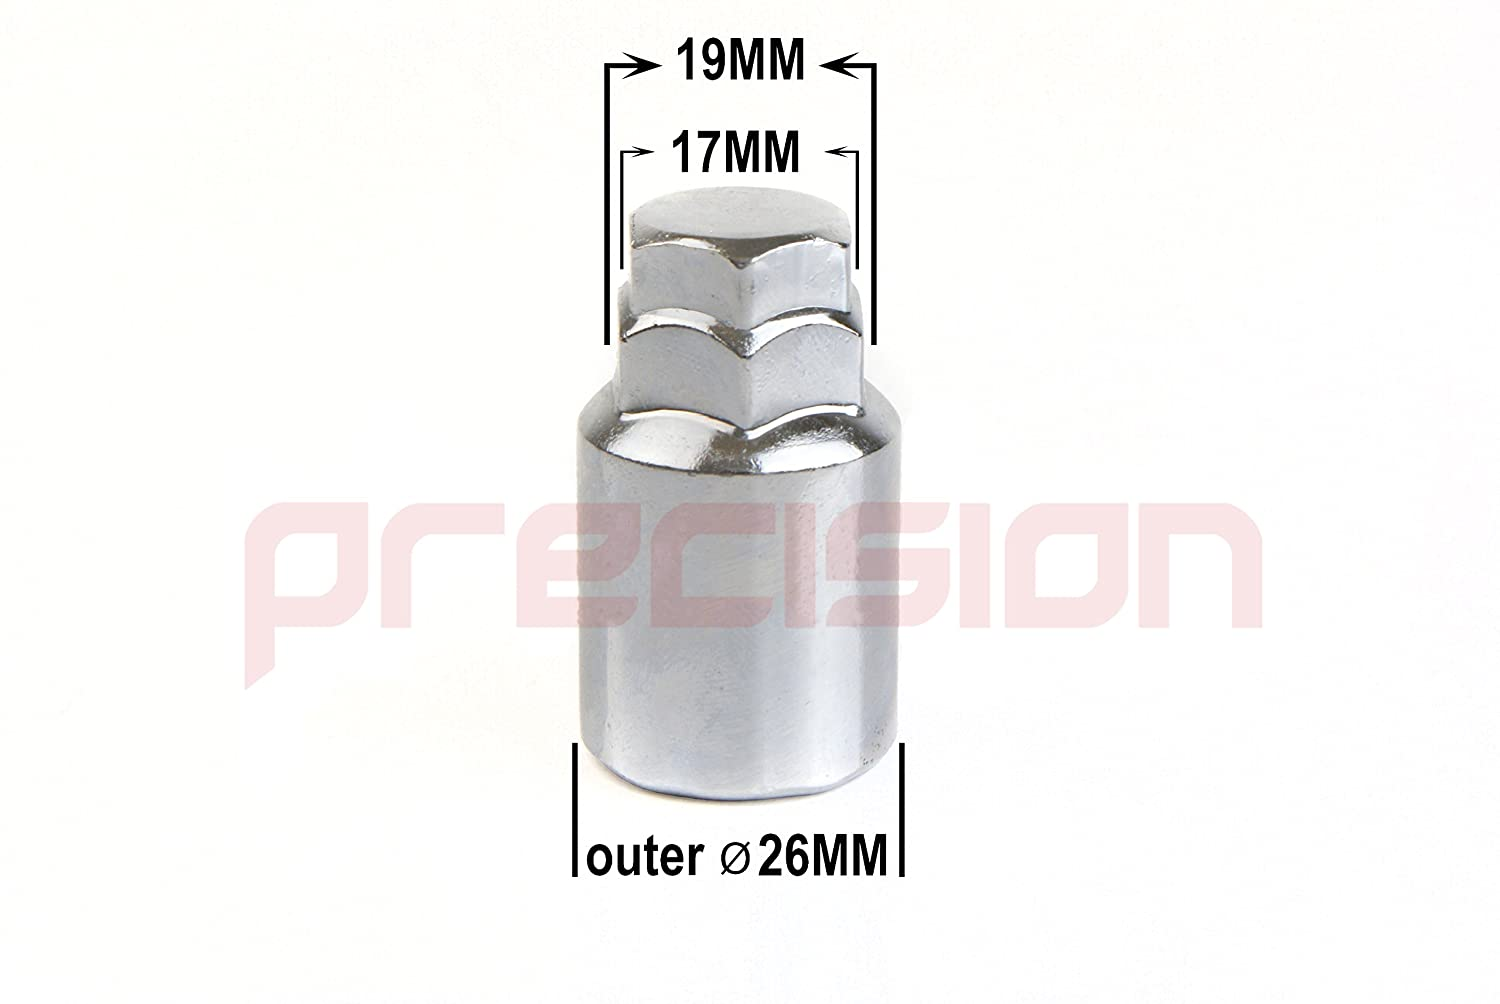 16 x Chrome Wheel Bolts Set with 4 x Locking Nuts for Aftermarket Alloy Wheels Only M12x1.5x26mm✓ 60/° Taper✓ Part No.16BM17+B17AM